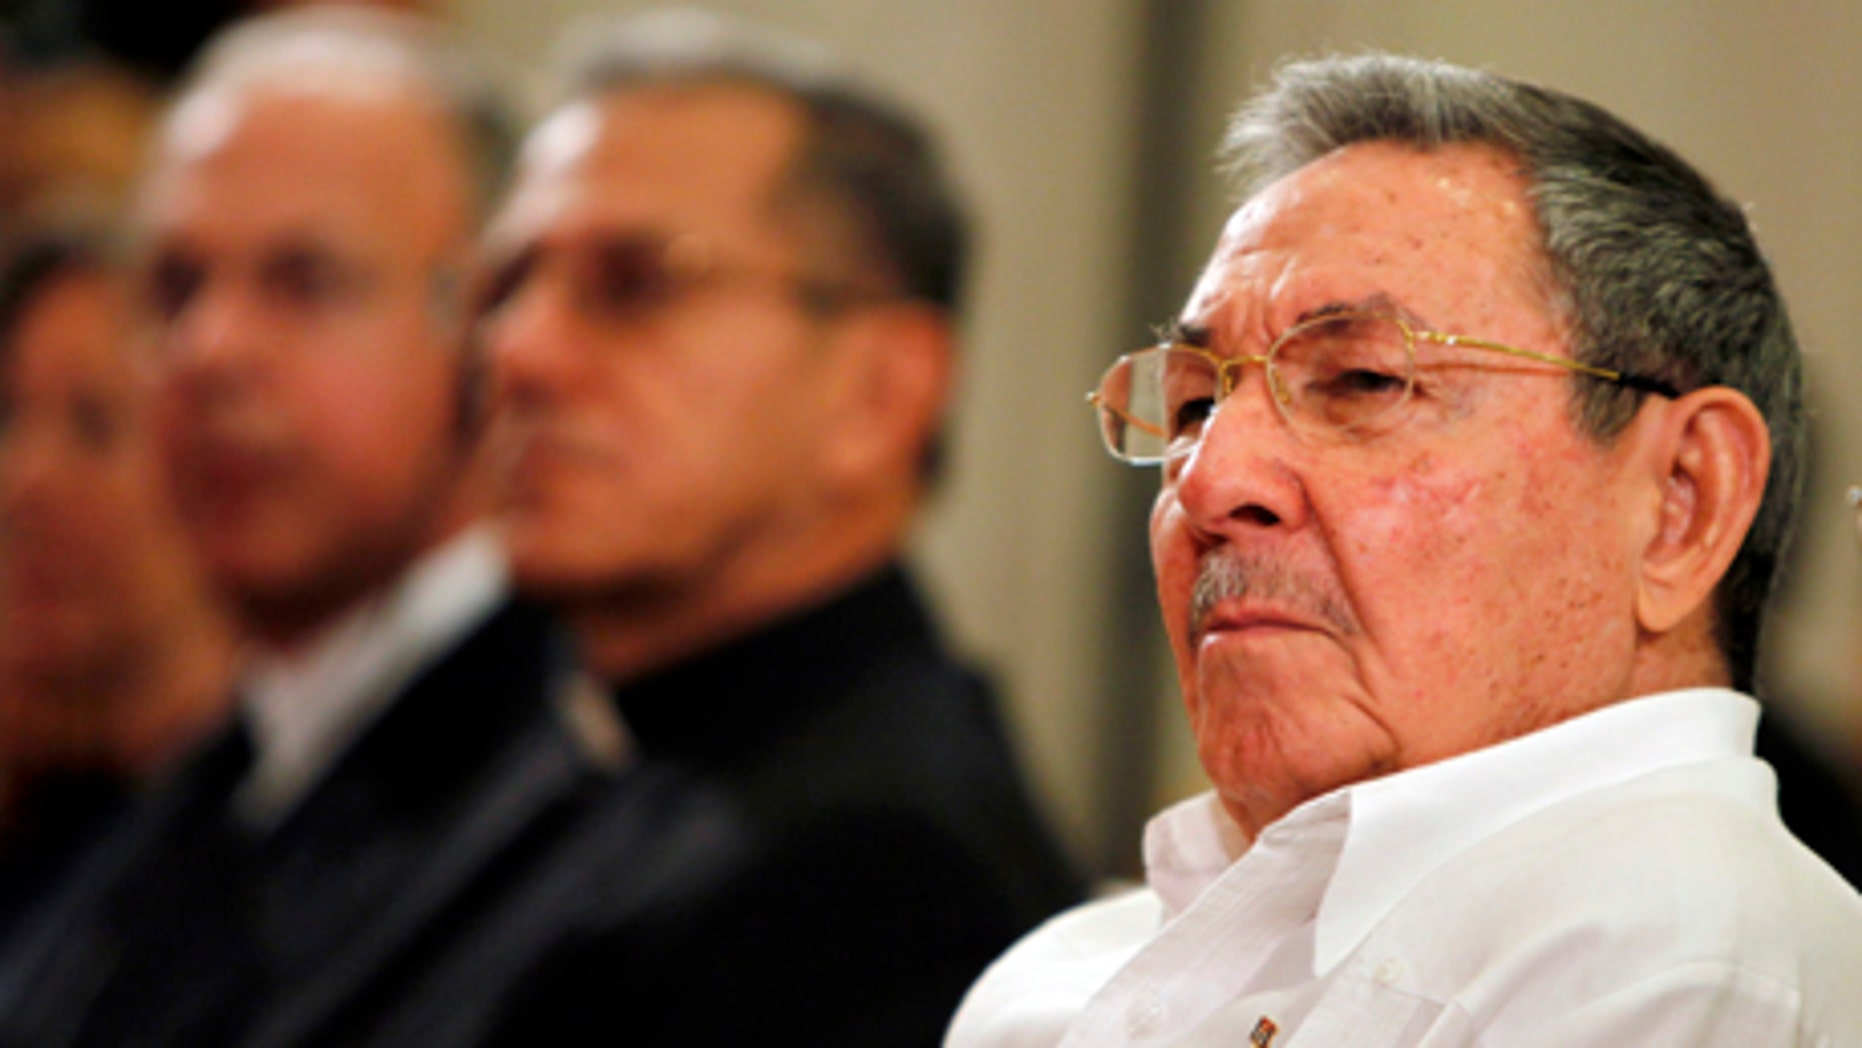 Cuba's President Raul Castro attends the opening ceremony of a new Catholic Seminary in Havana, Cuba, Wednesday Nov. 3, 2010. Castro joined Archbishop Thomas G. Wenski of Miami and other Roman Catholic leaders to open the national seminary, the first religious construction on the communist-run island in more than a half century. (AP Photo/Javier Galeano)